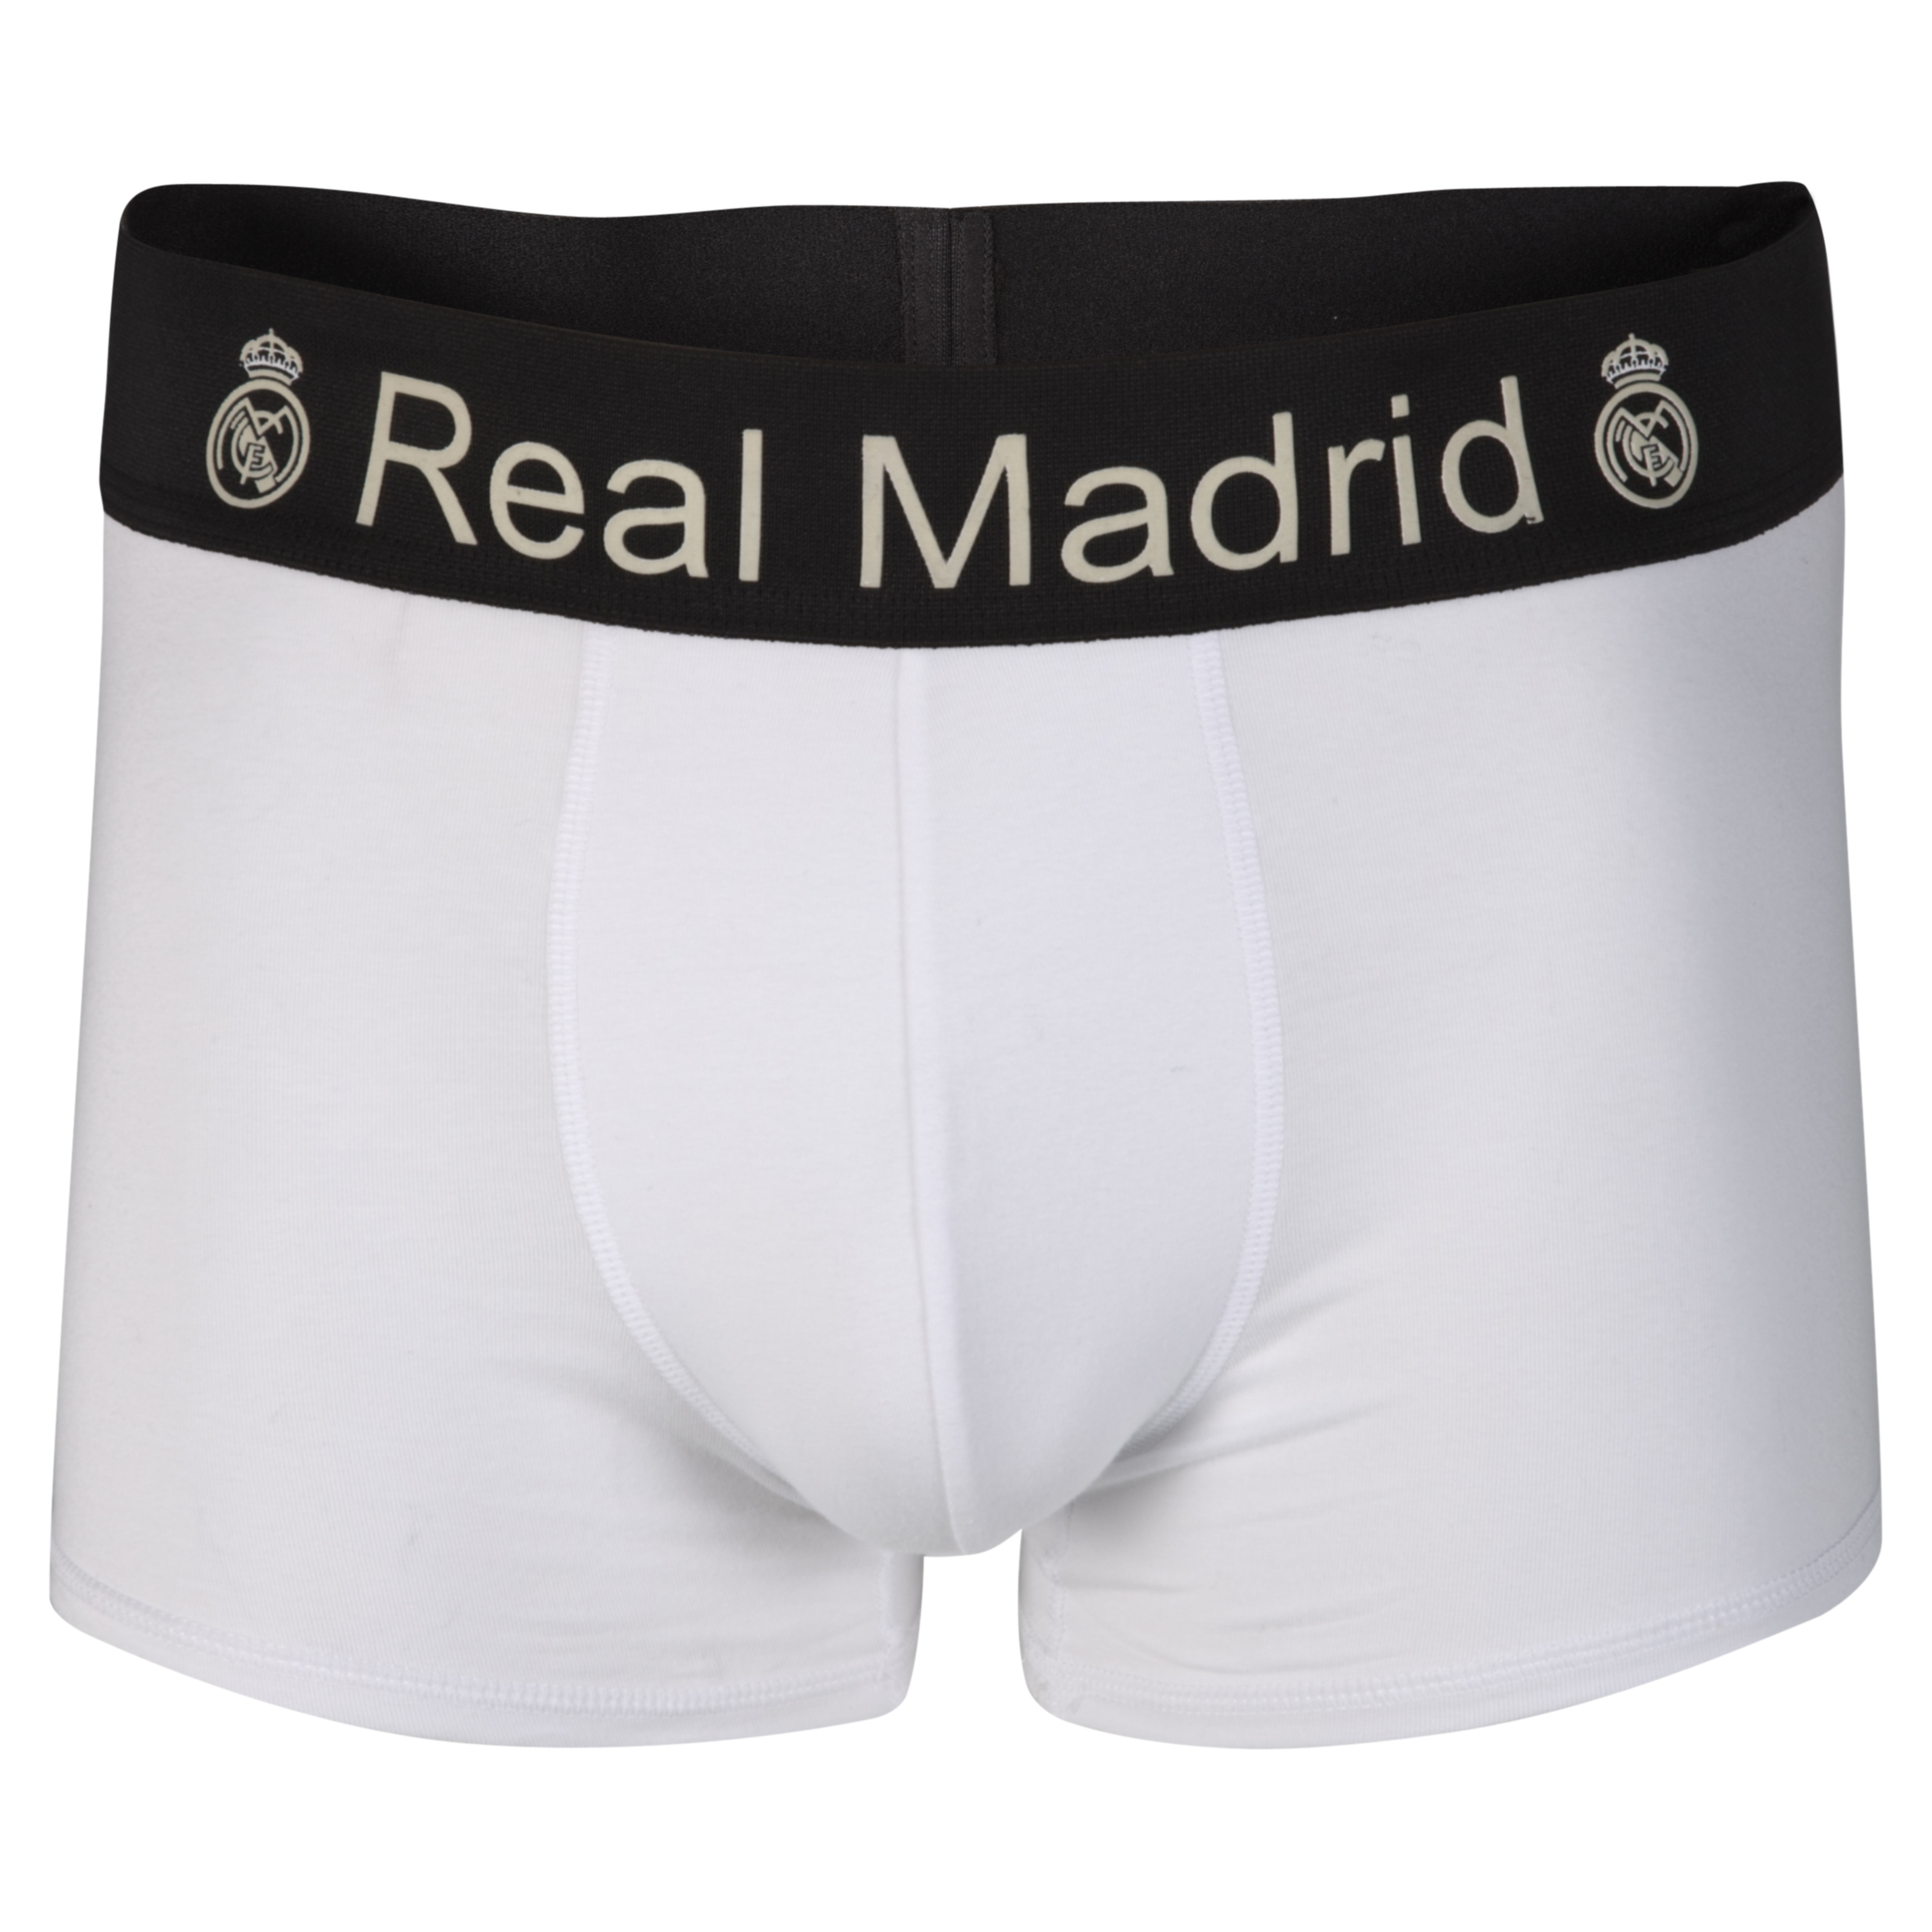 Real Madrid Glow In The Dark Boxers - White